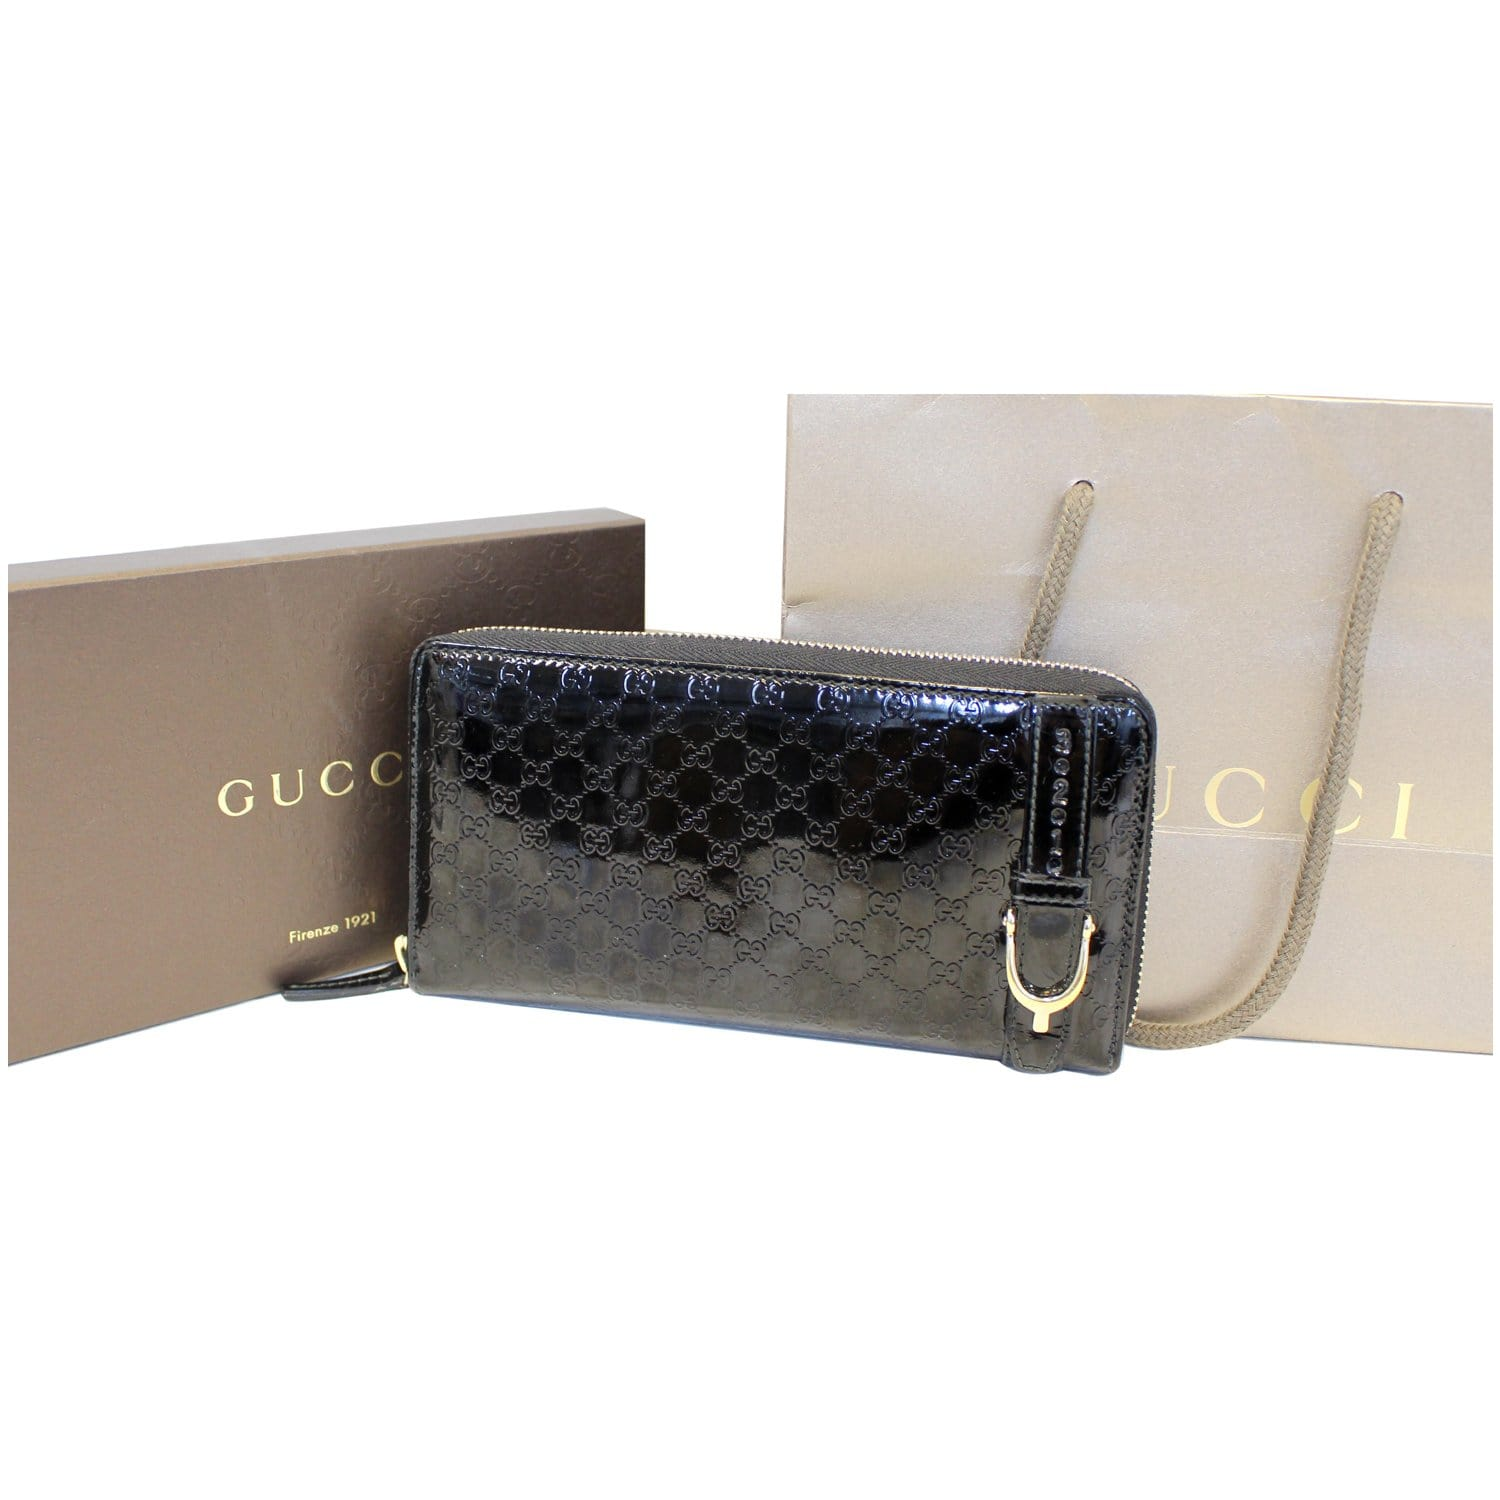 7526858a297 GUCCI Nice Microguccissima Patent Leather Wallet 309758-US